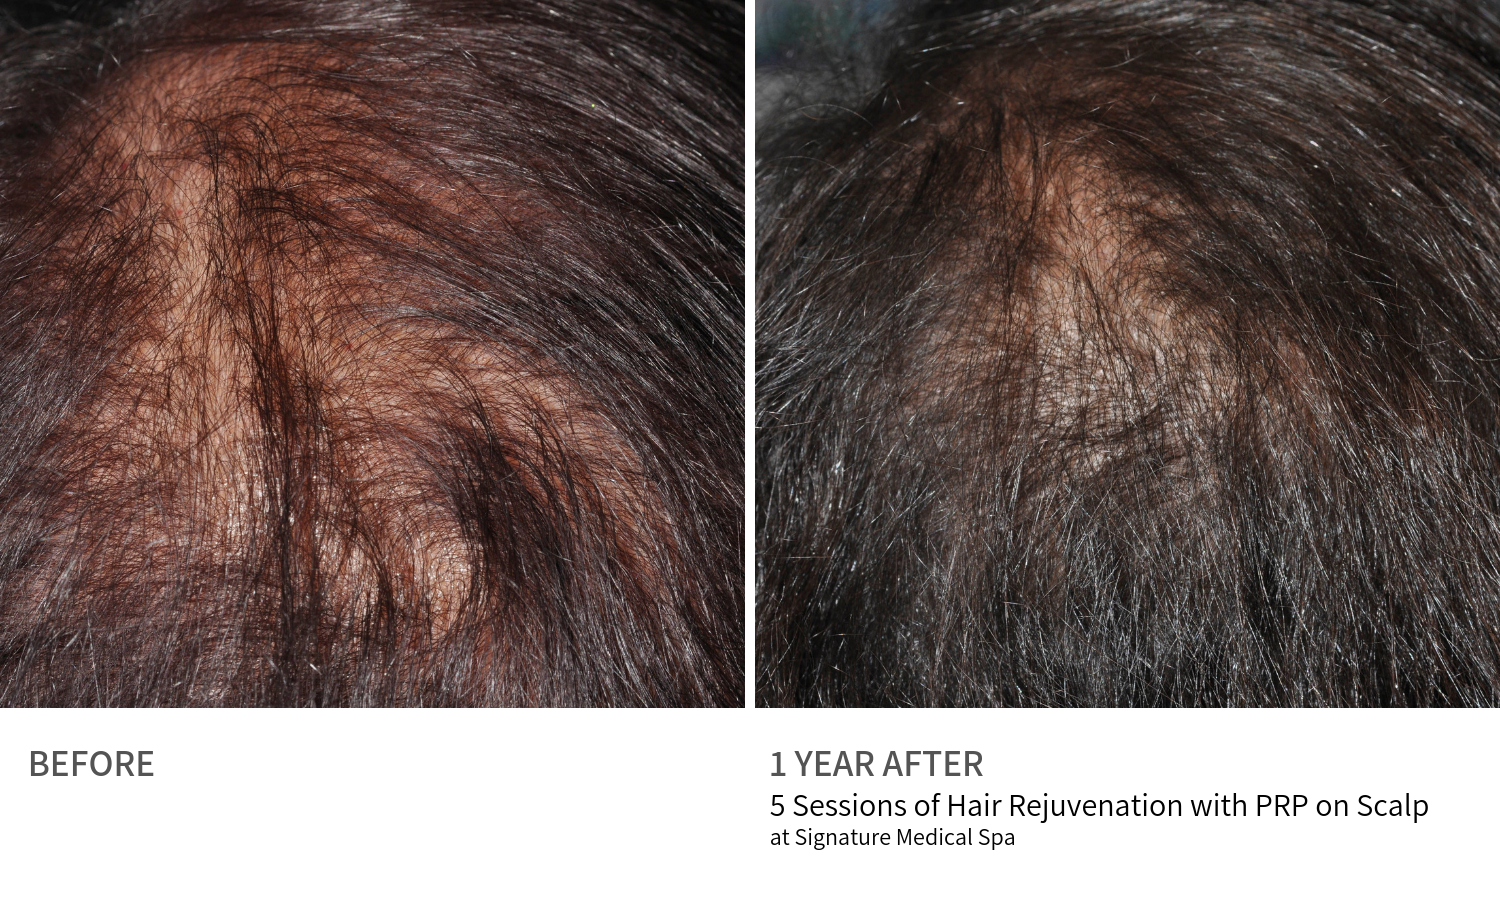 Before and After Hair Rejuvenation